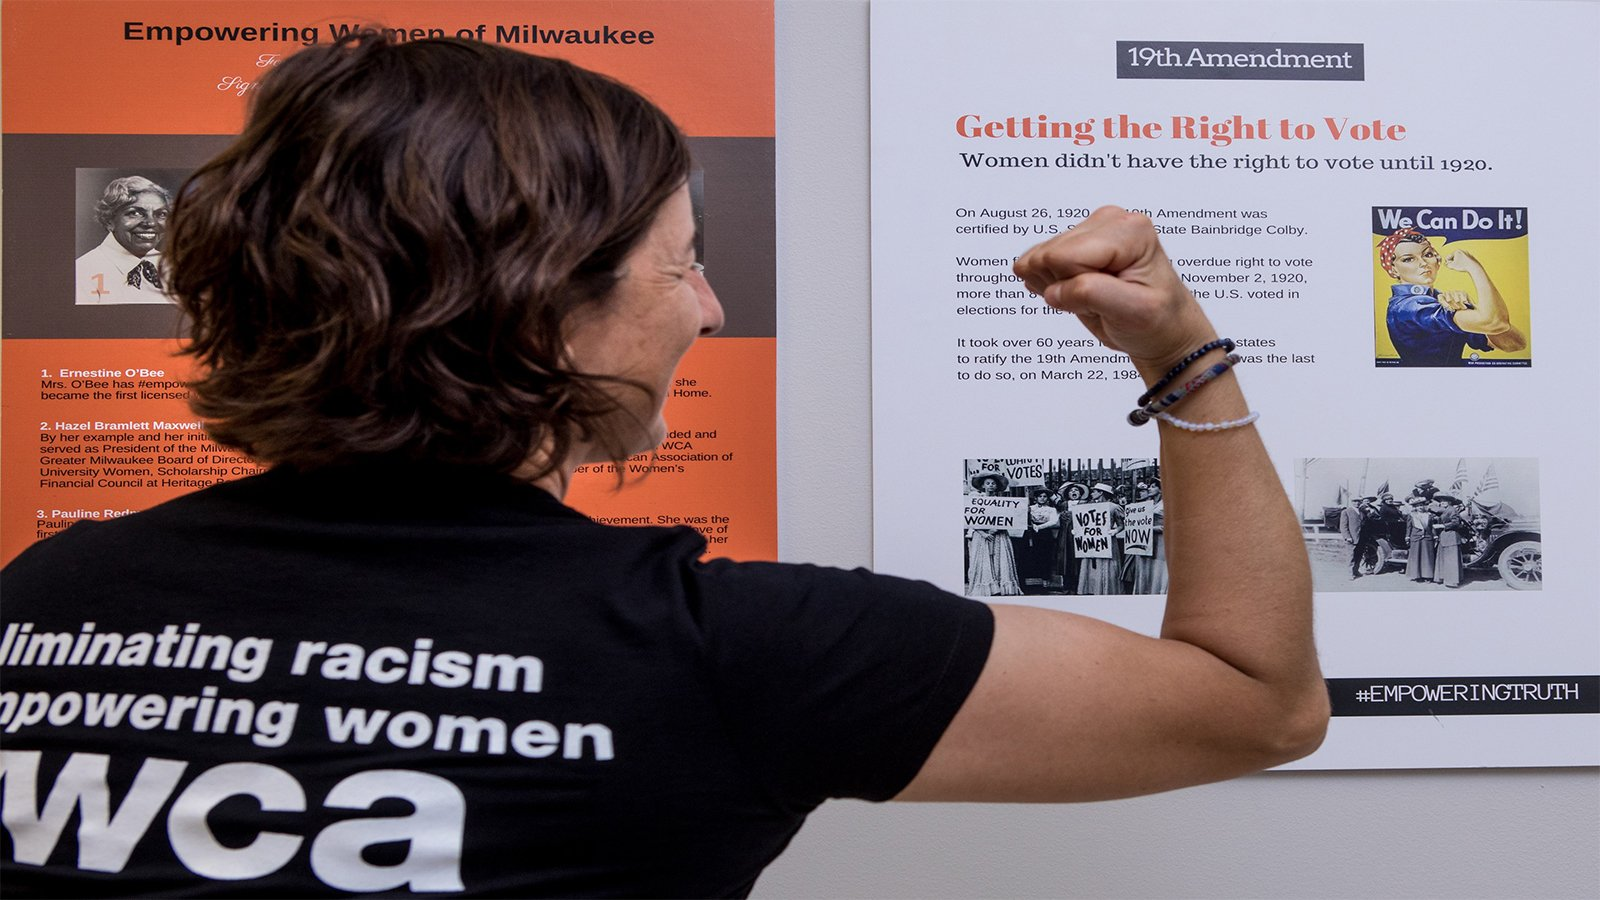 We Can Do It YWCA Woman Making Muscle